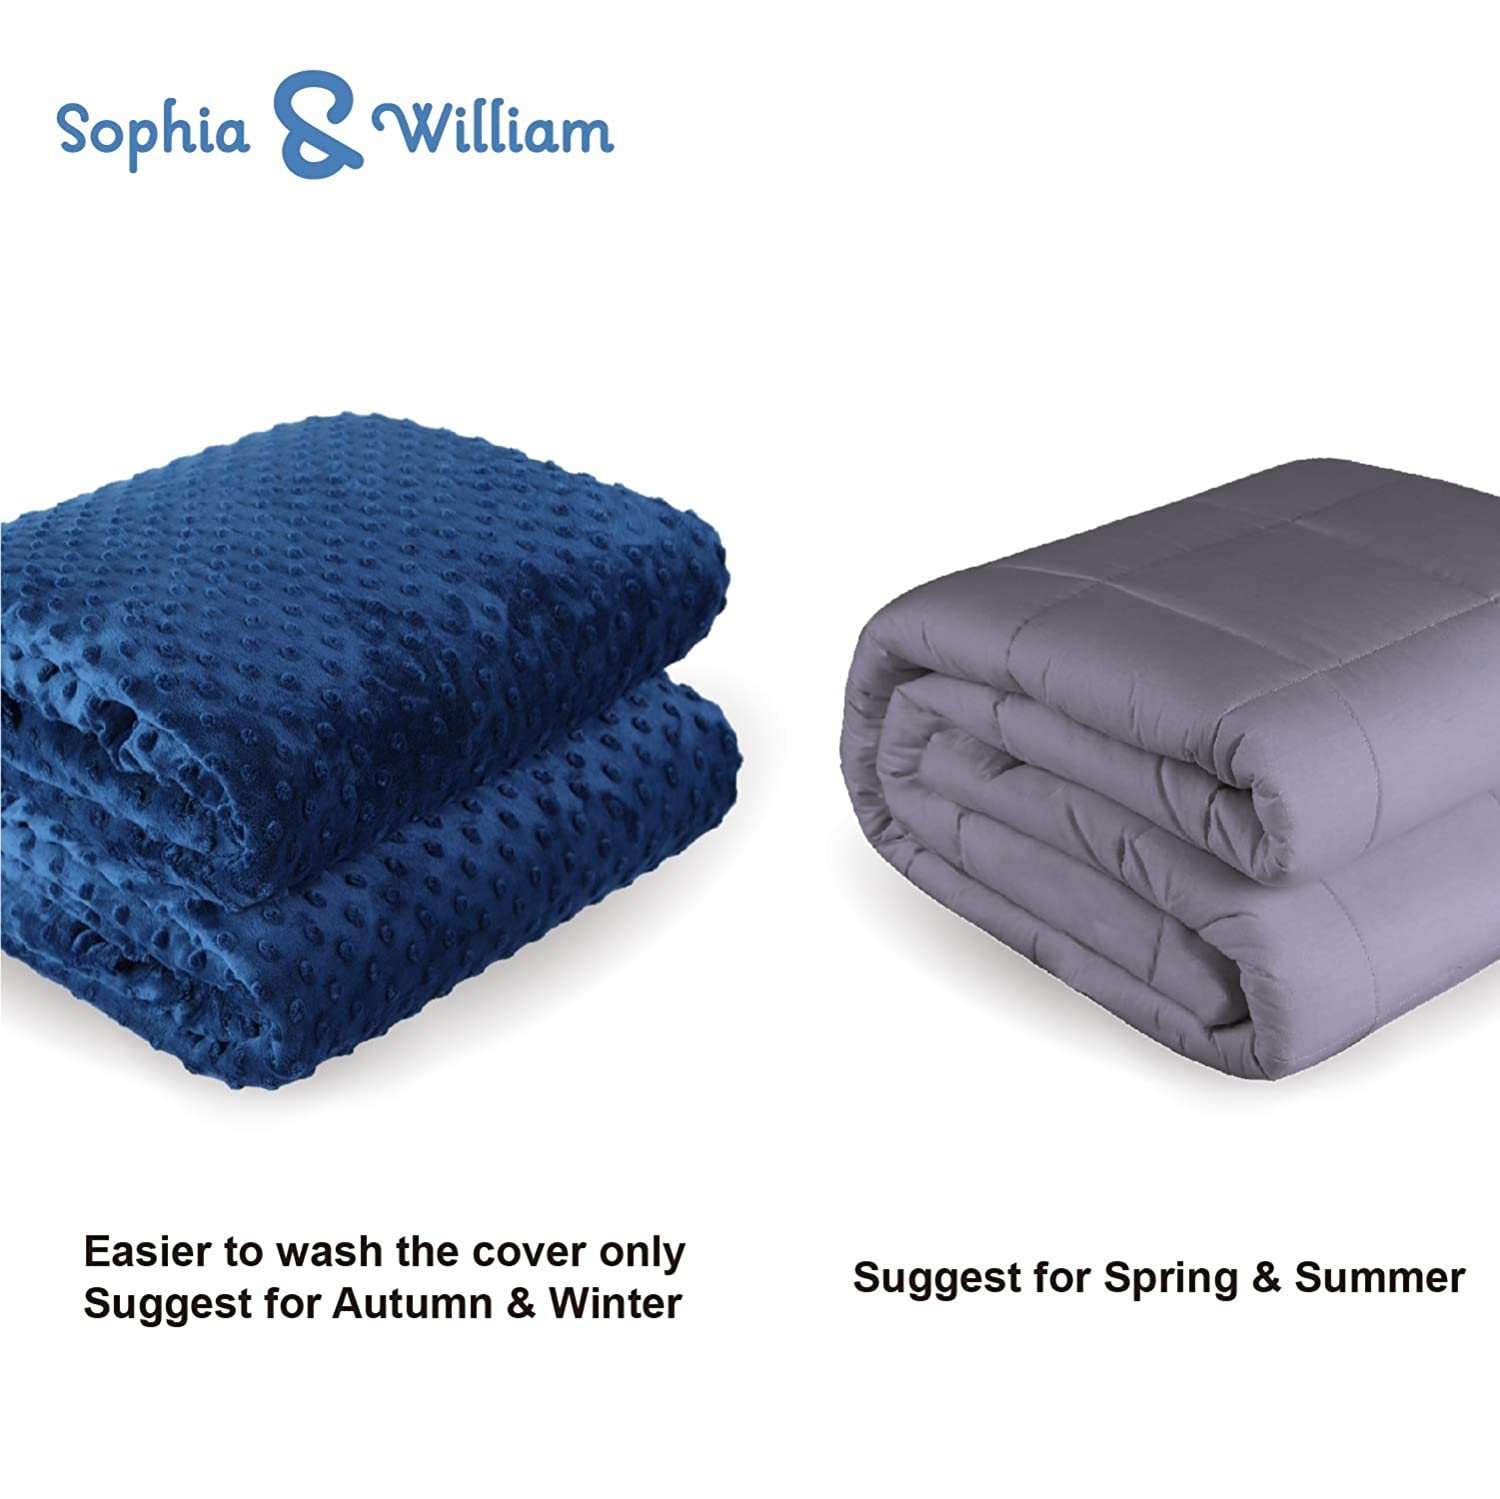 Light Blue Sophia /& William Weighted Blanket for Adult Cotton 25 lbs Free Minky Cover Incluede 60x80